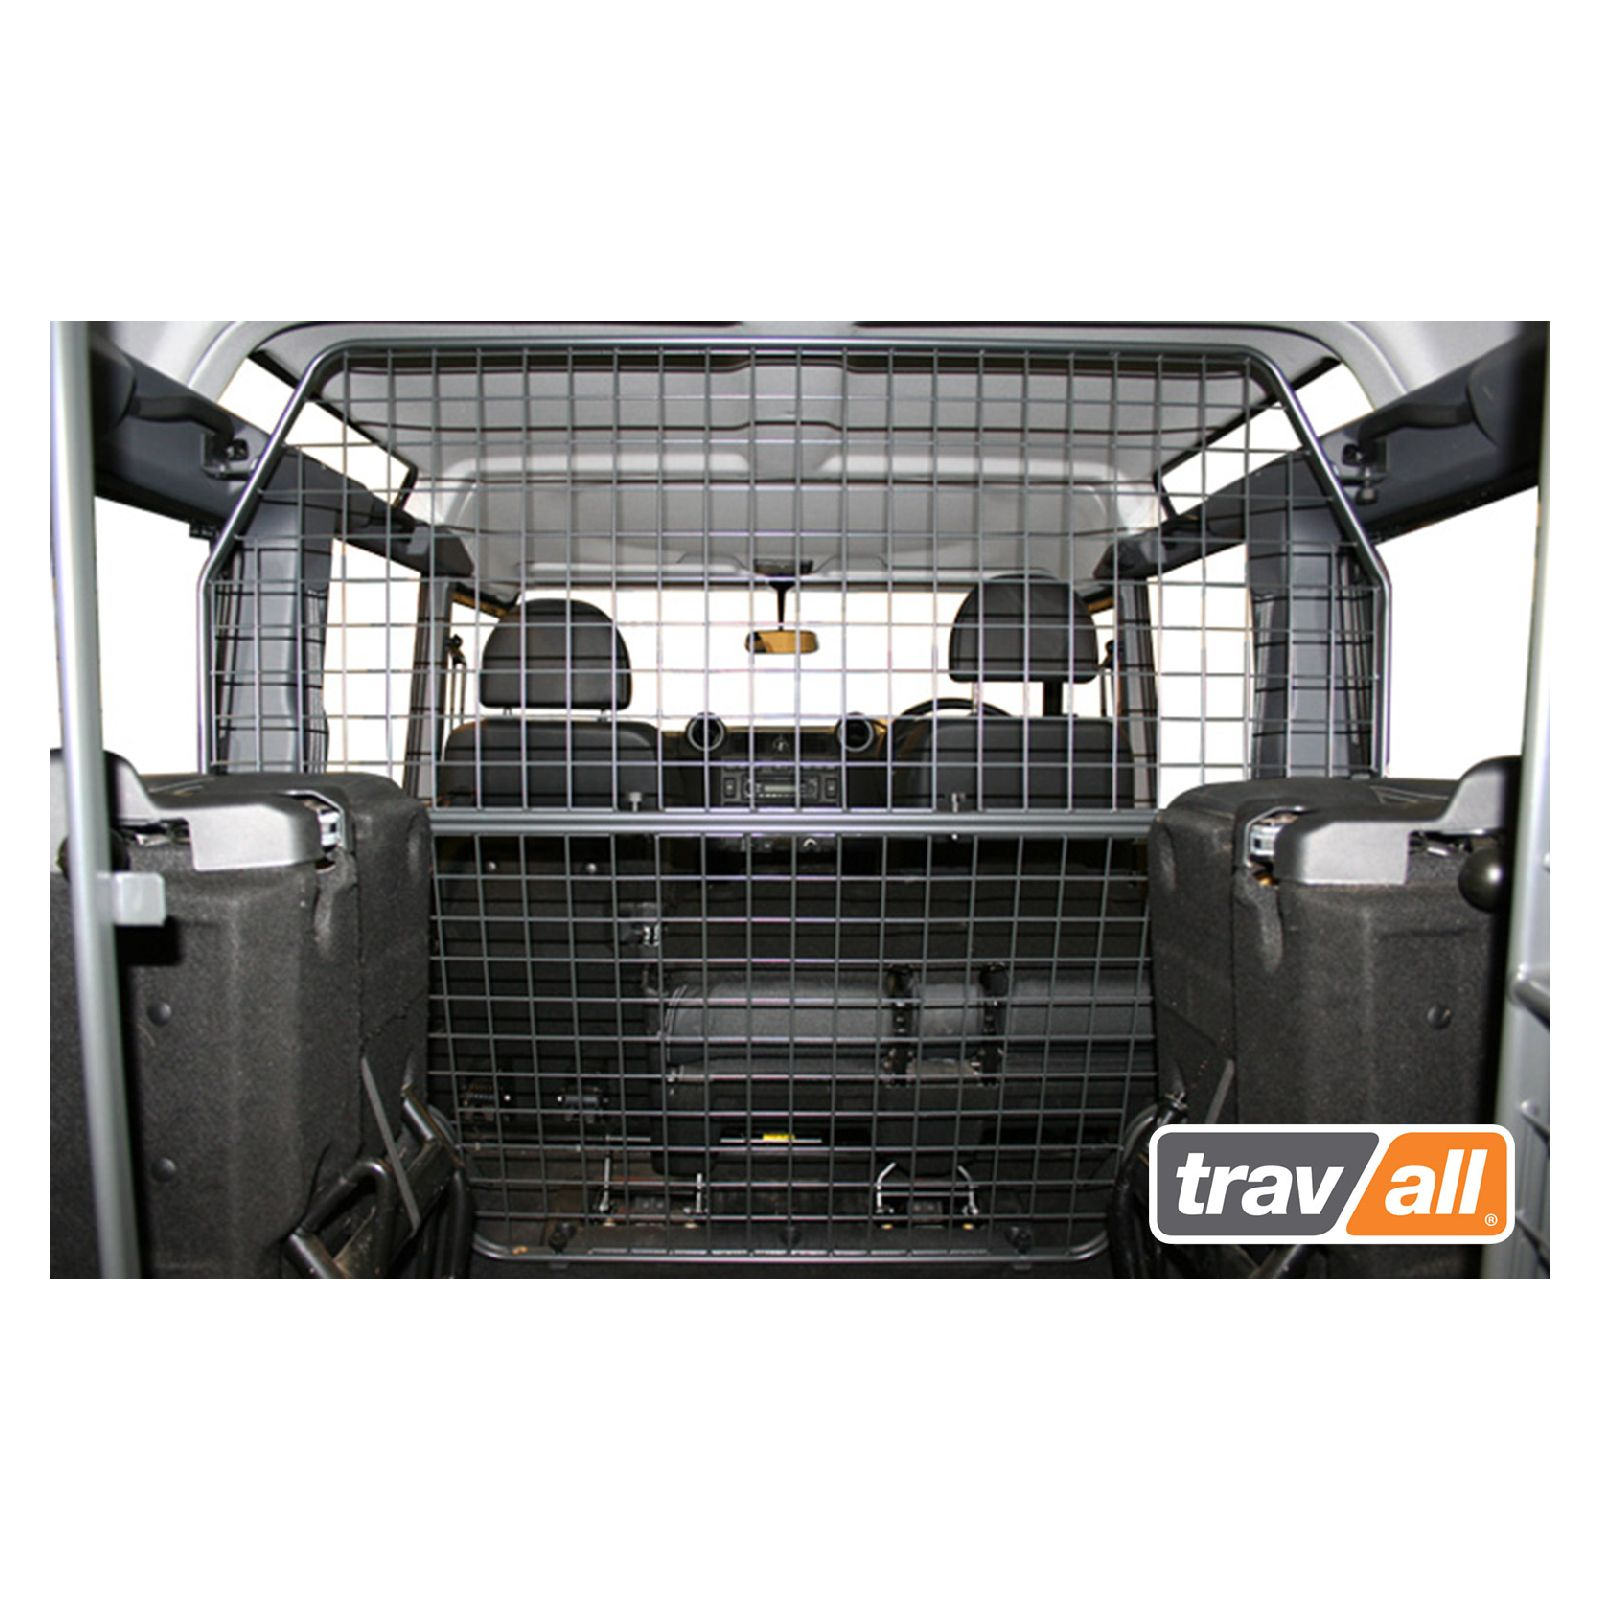 2007 Land Rover For Sale: TRAVALL DOG GUARD LAND ROVER DEFENDER 110 (2007-)